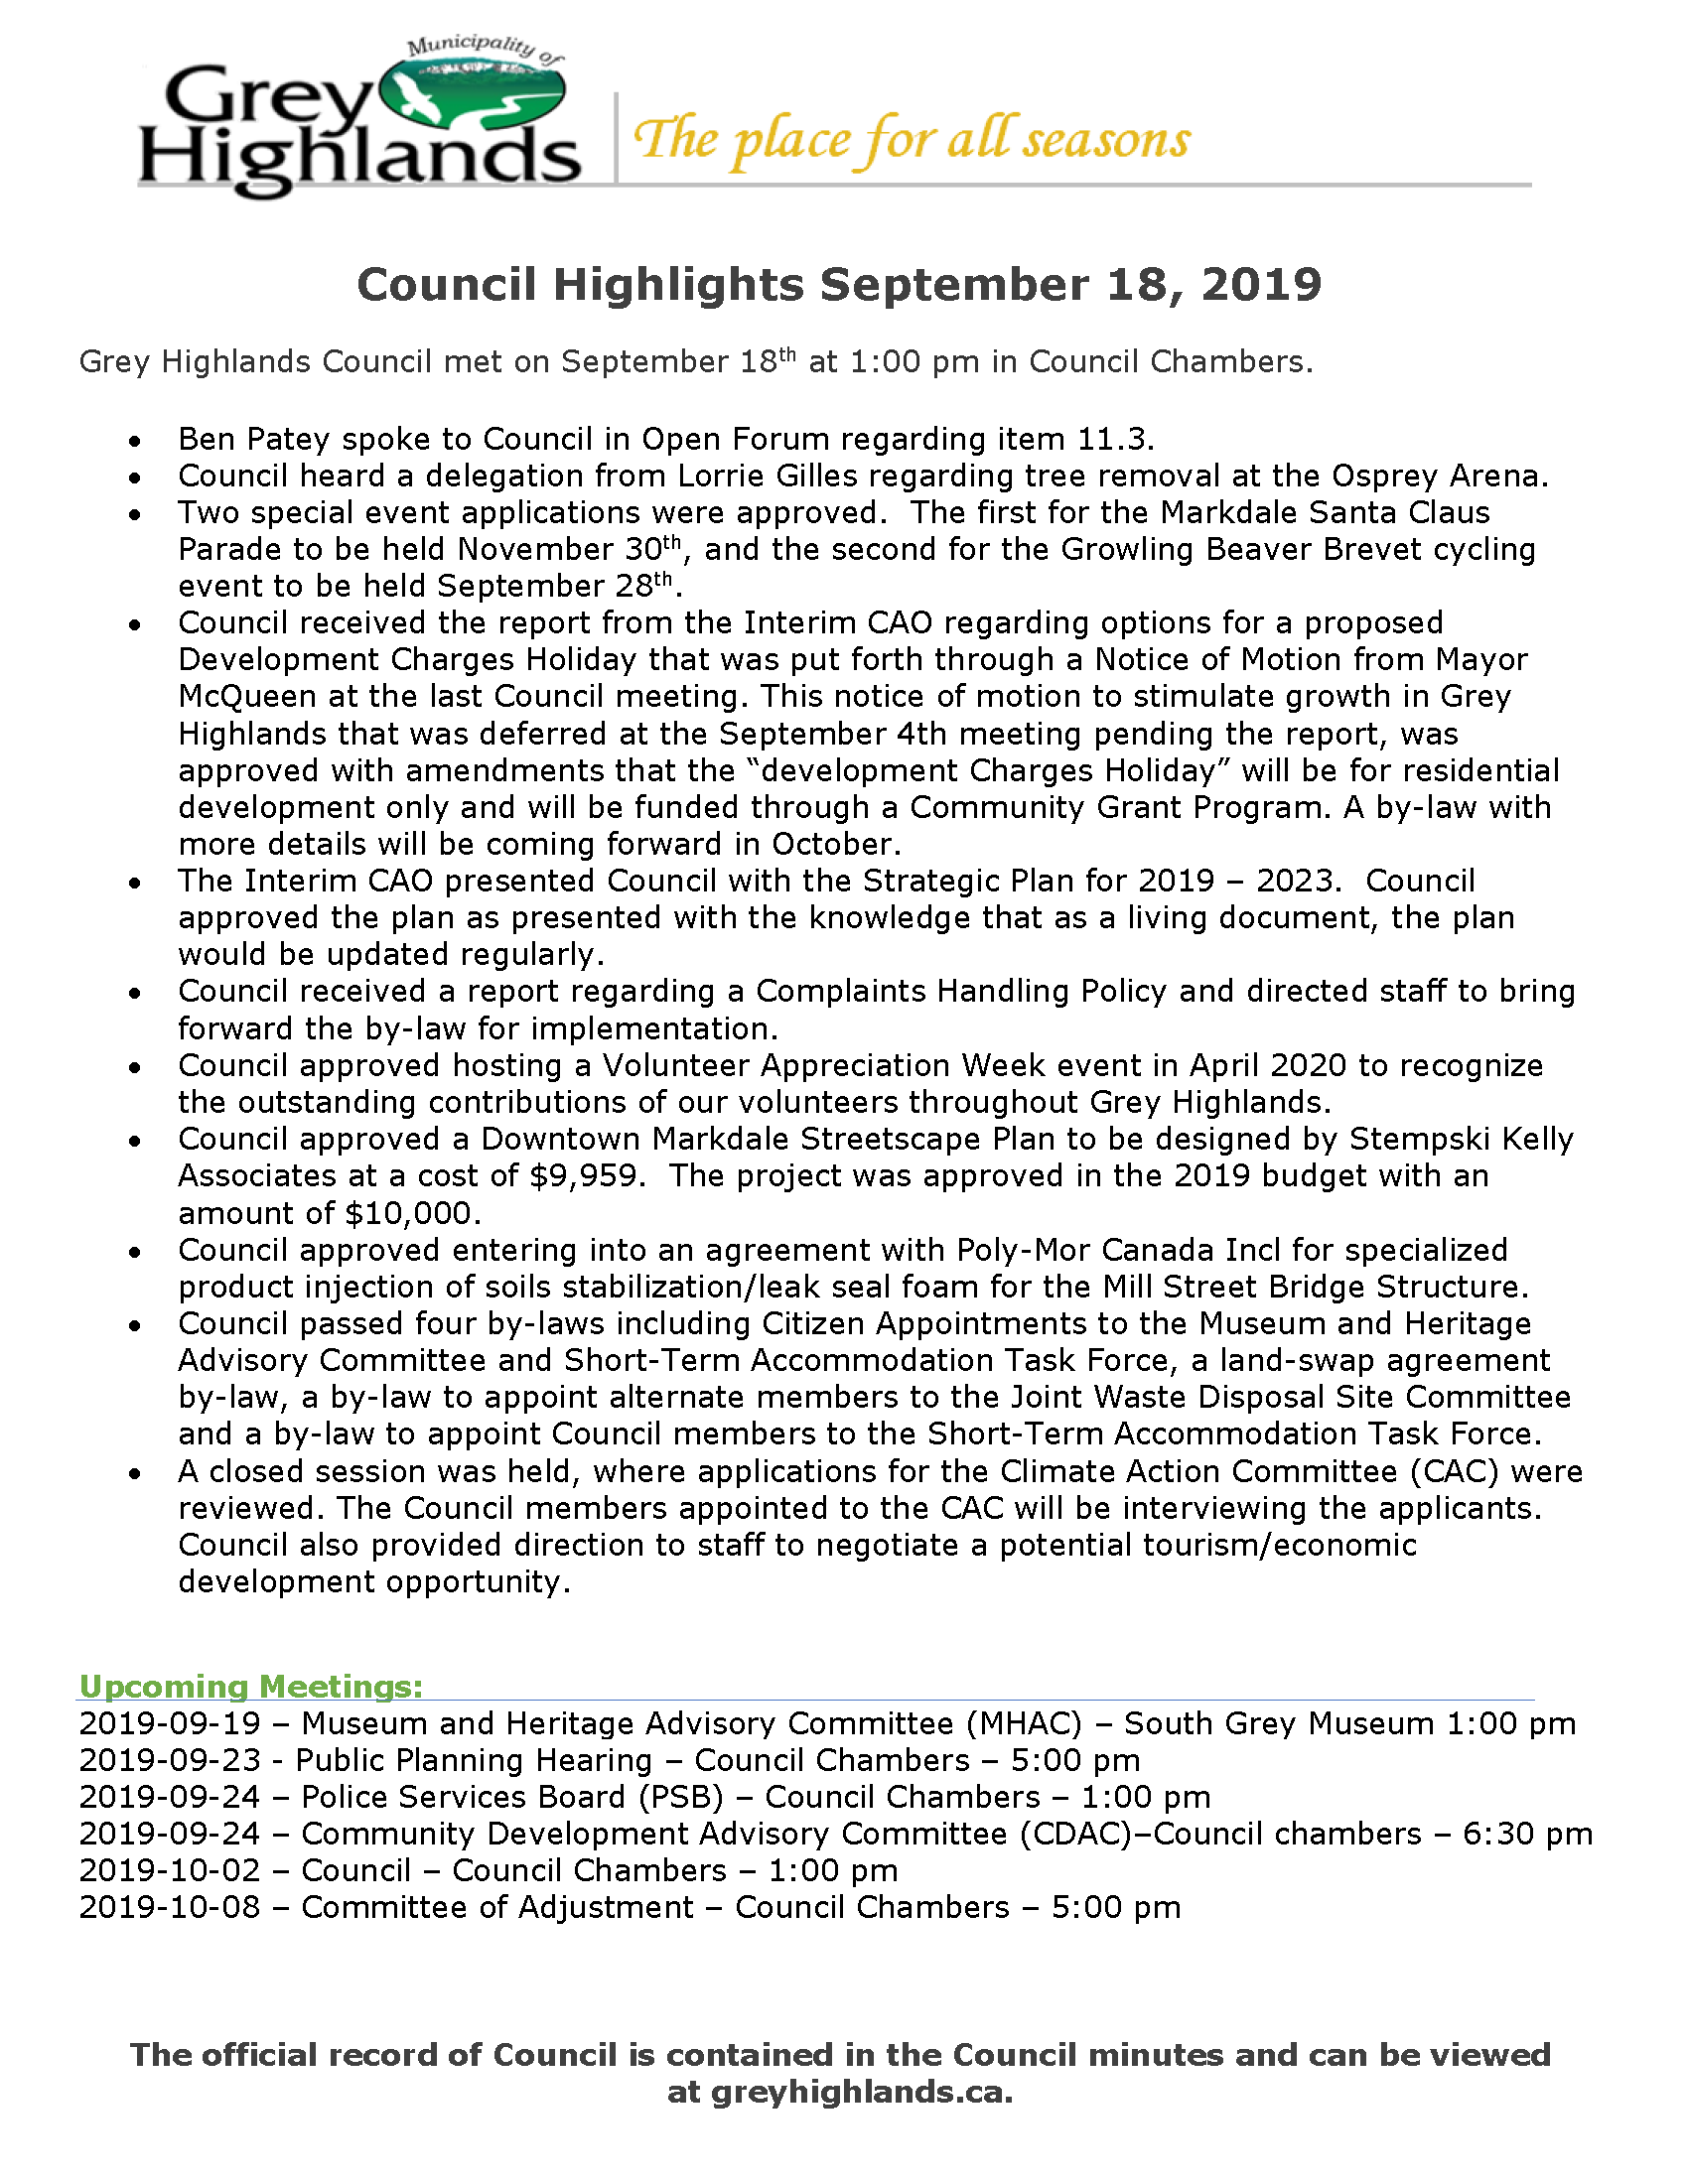 Council Highlights - September 18, 2019